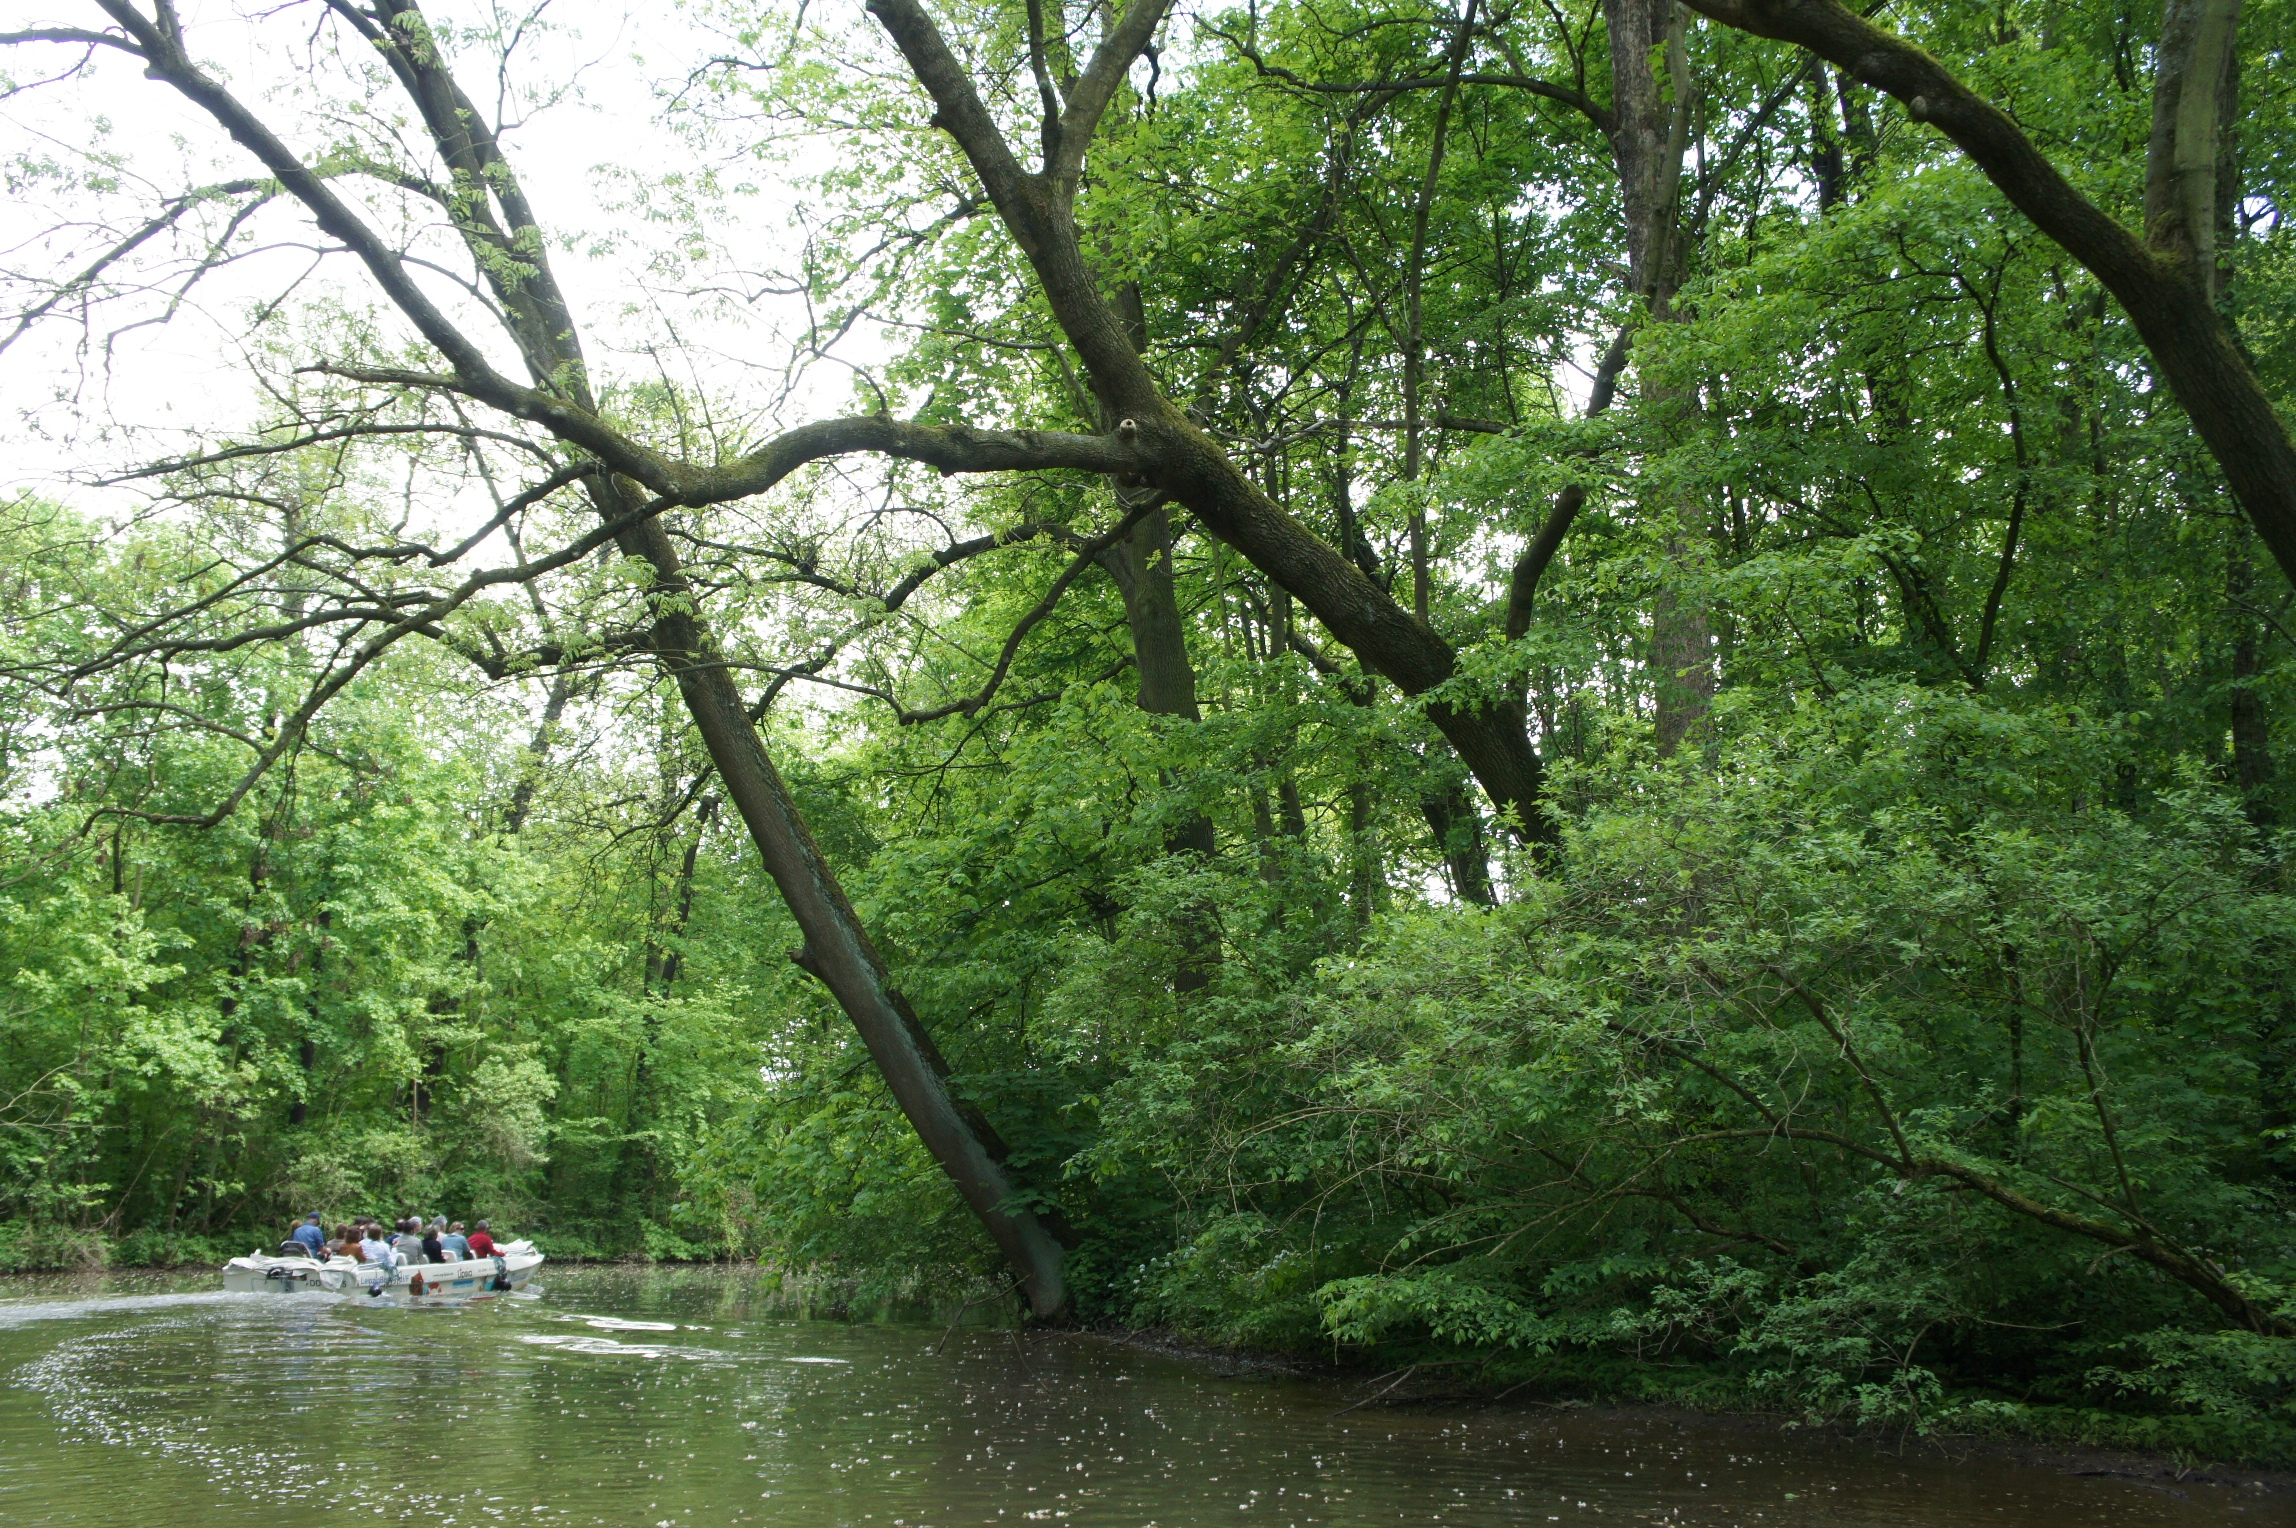 Experiencing the floodplain forests of the city of Leipzig, Germany, from the river (photo by Matilda Annerstedt)